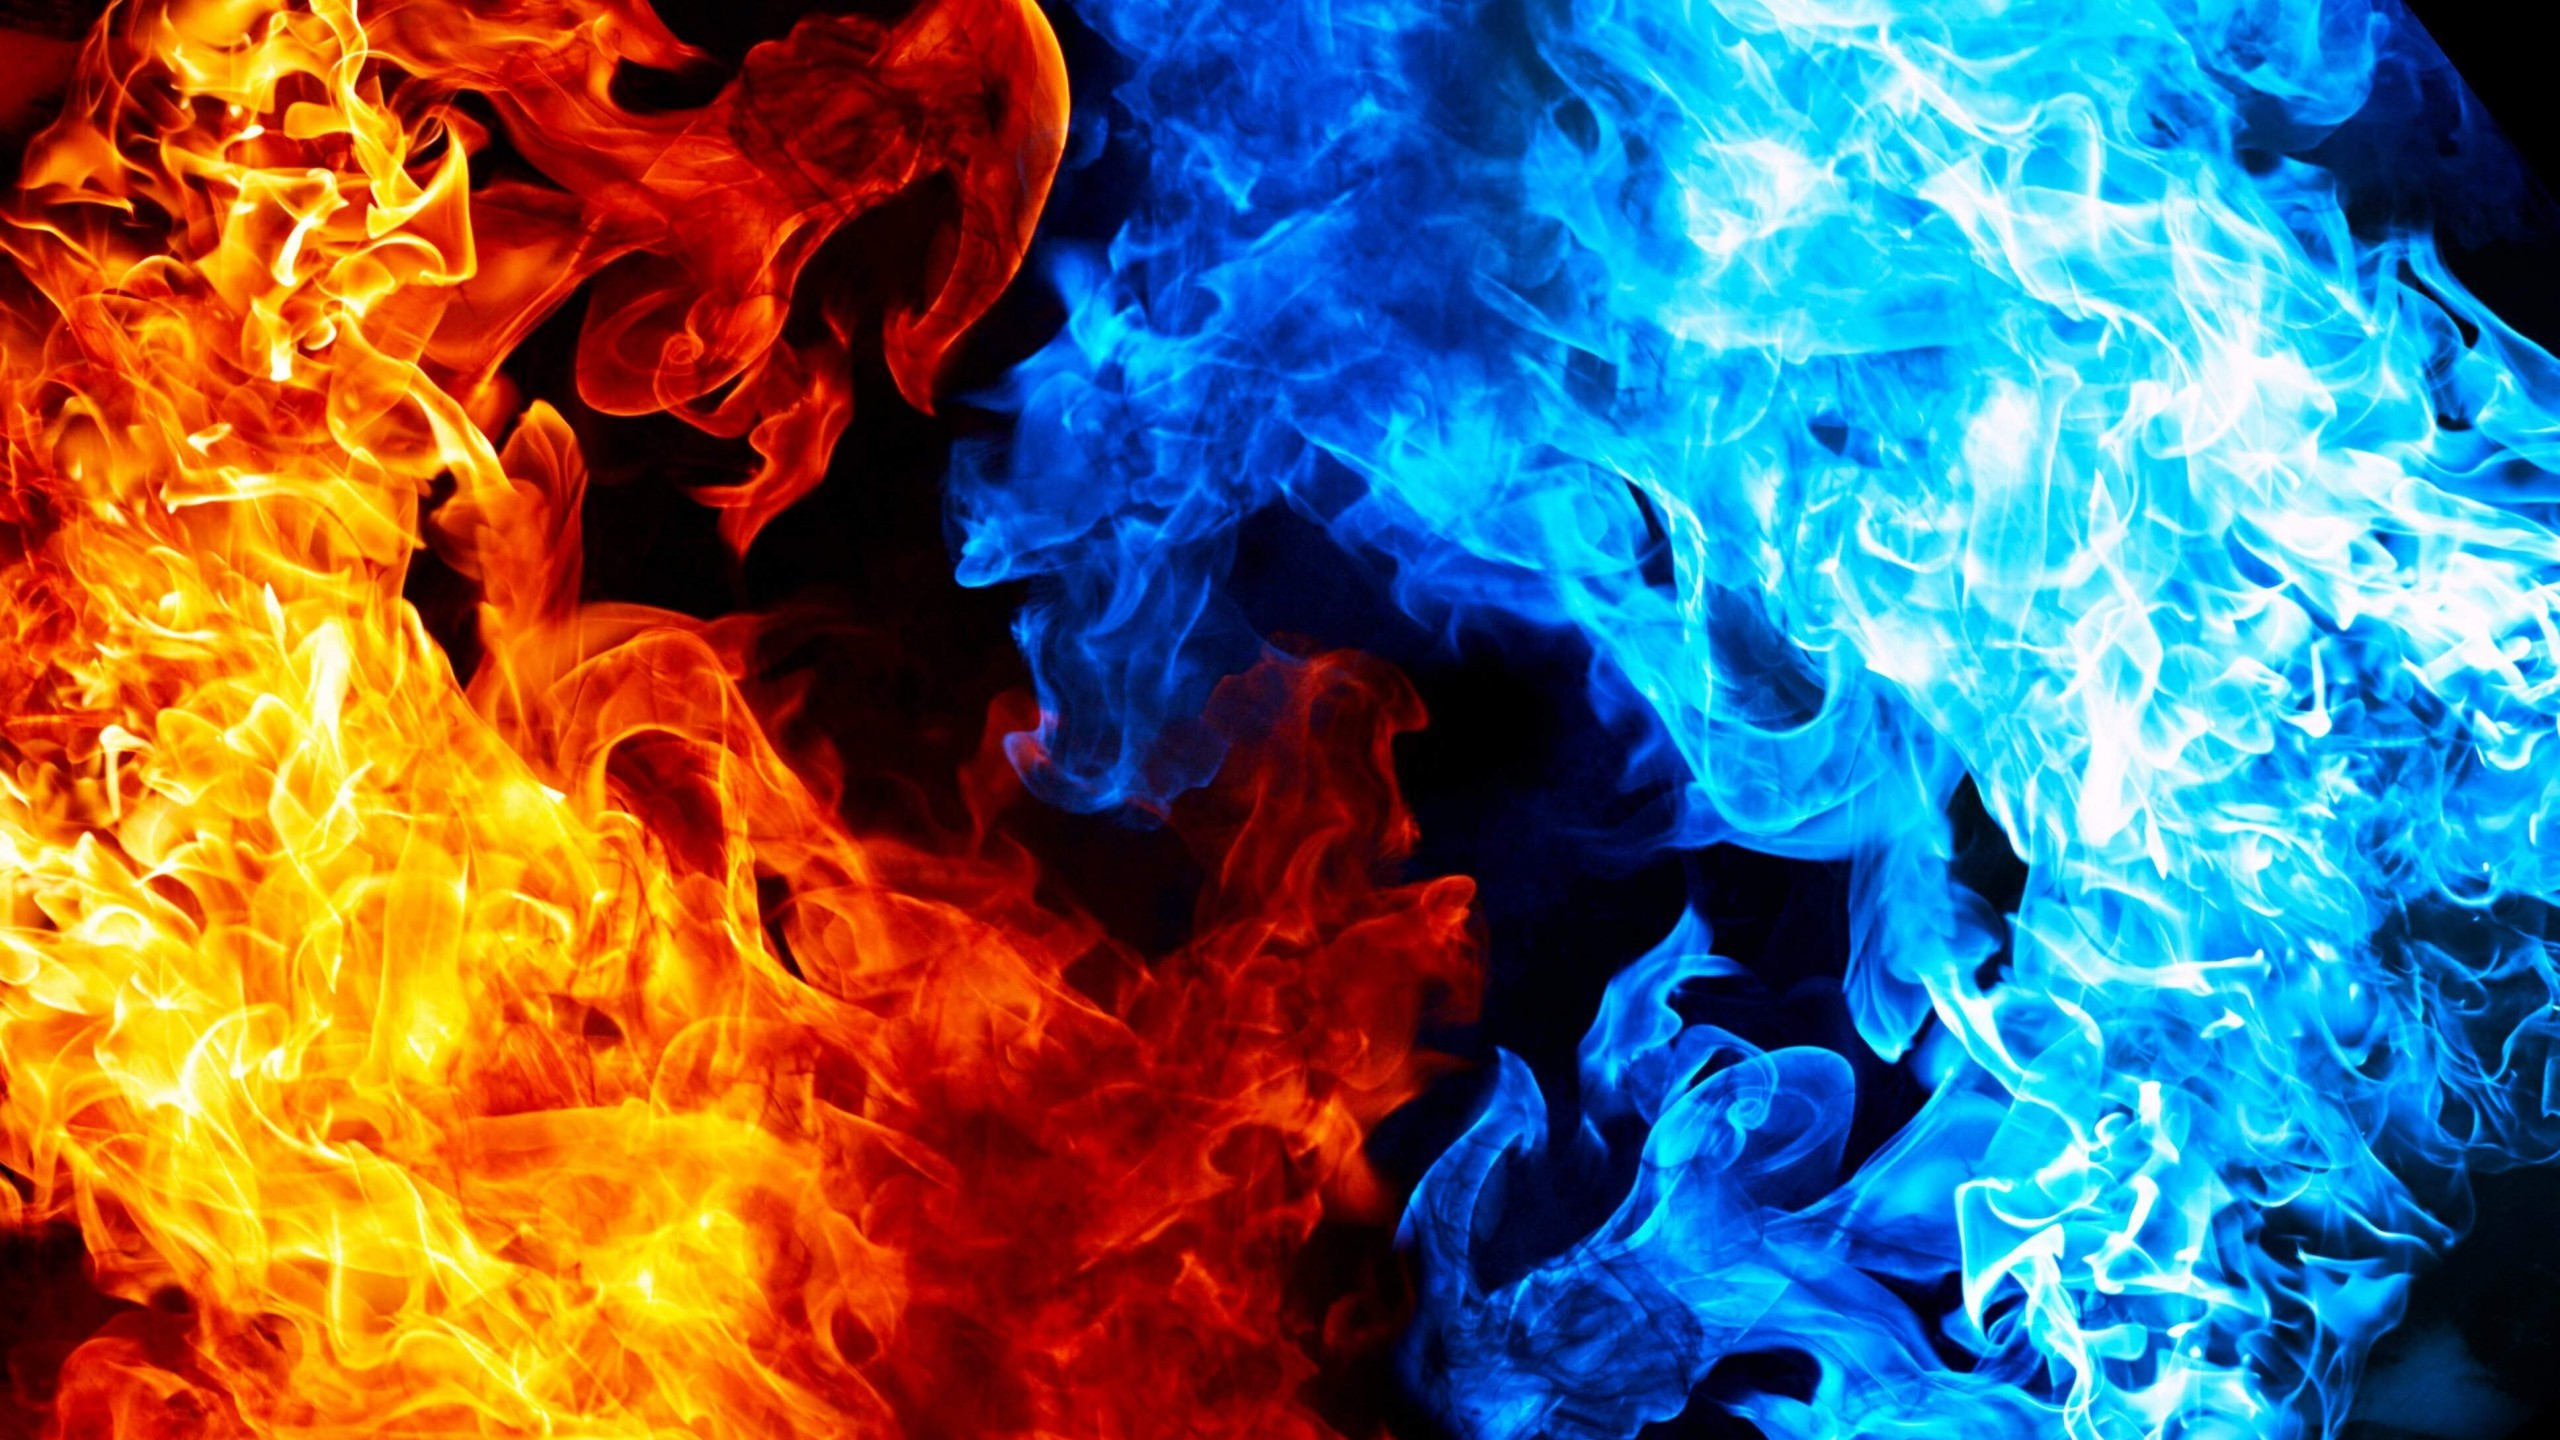 2560x1440 - Red and Blue Fire 24